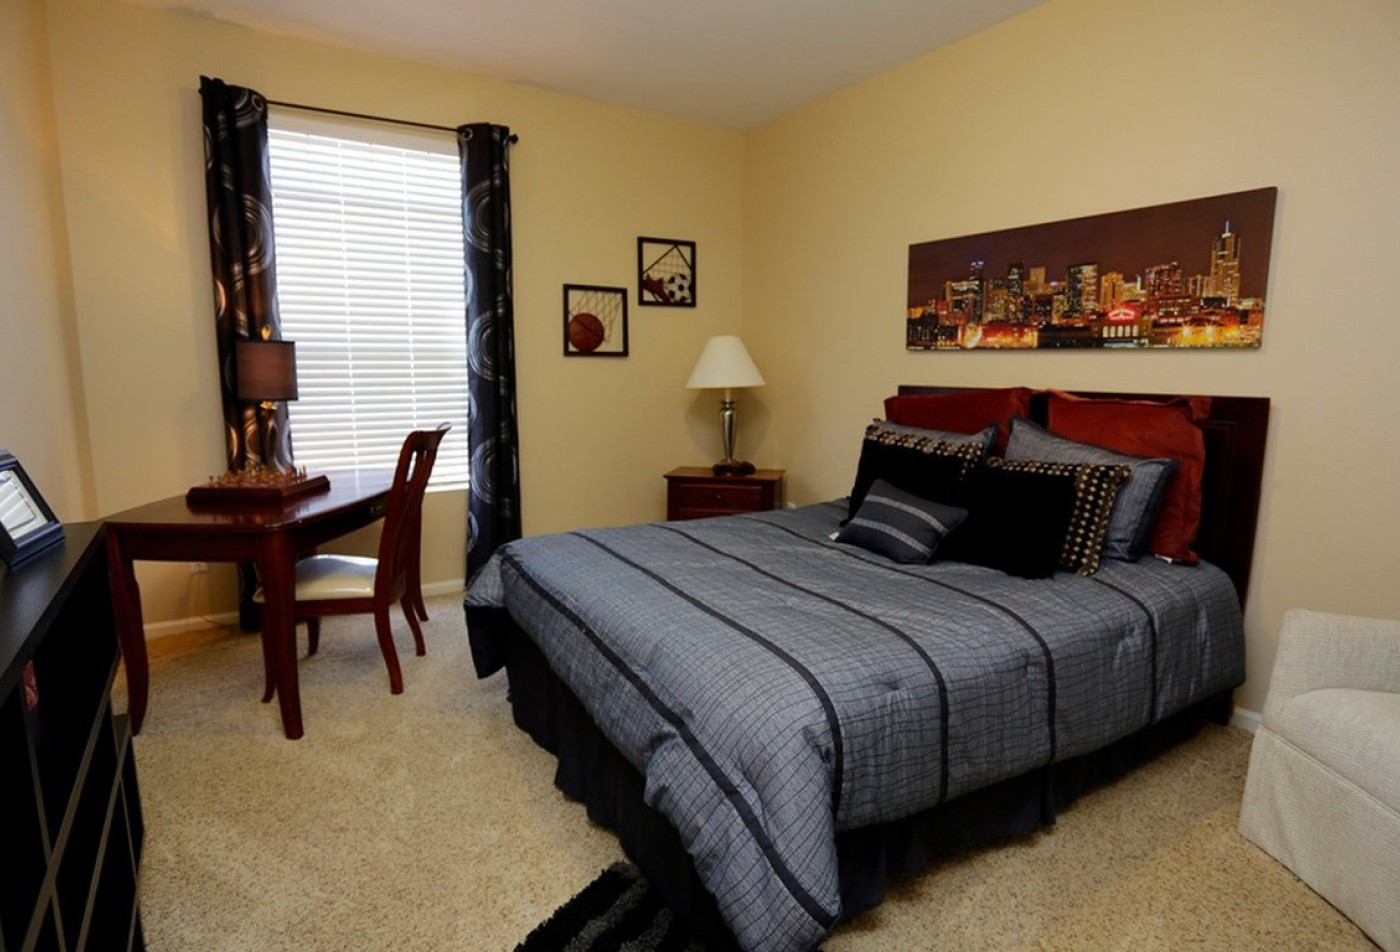 Bedroom with carpet